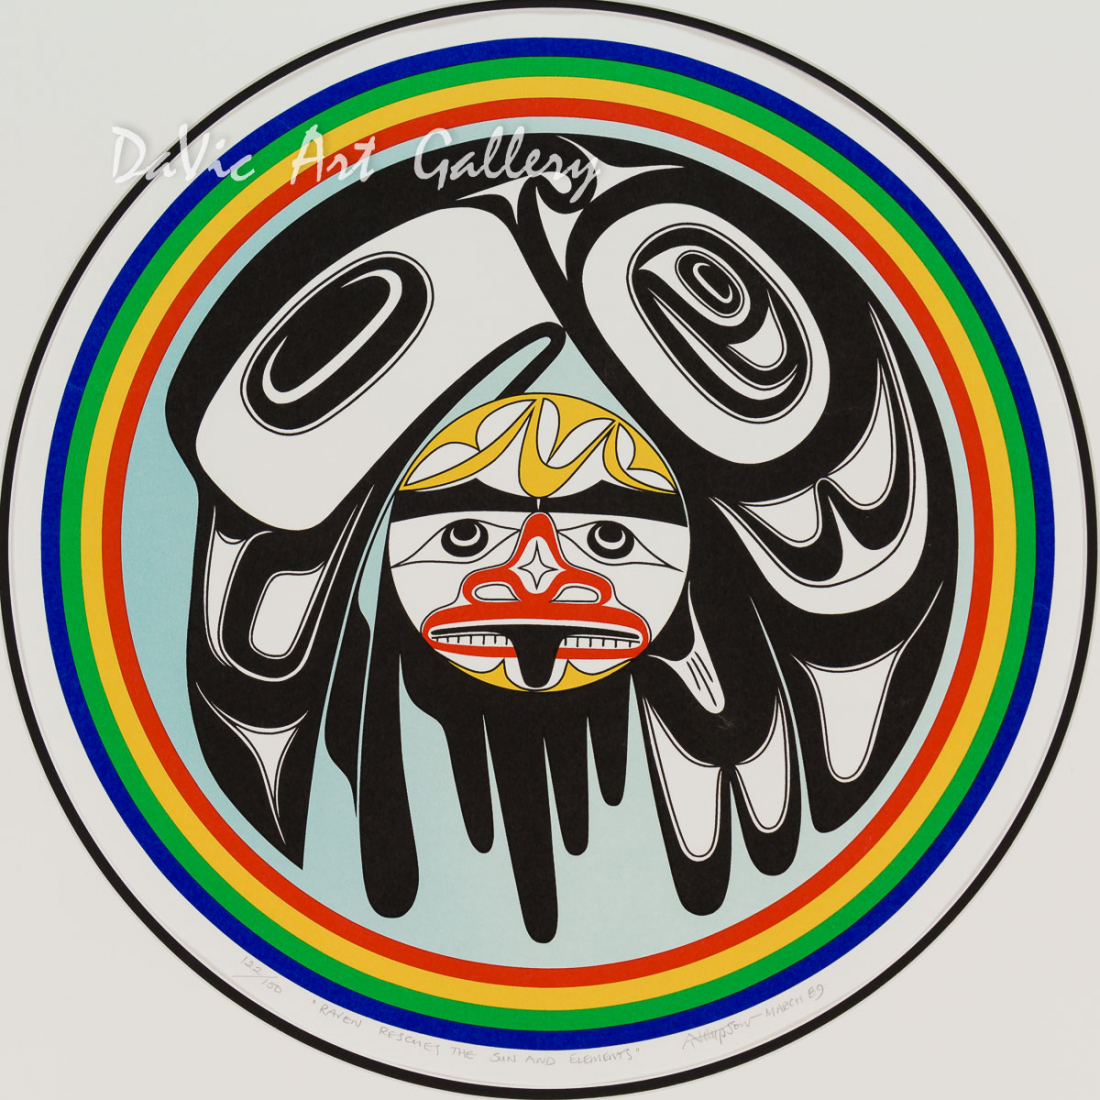 'Raven Rescues the Sun and Elements' by Art Thompson - First Nations Northwest Coast Nuu-Chah-Nulth Art presented by DaVic Gallery of Native Canadian Arts 'Raven Rescues the Sun and Elements' by Art Thompson